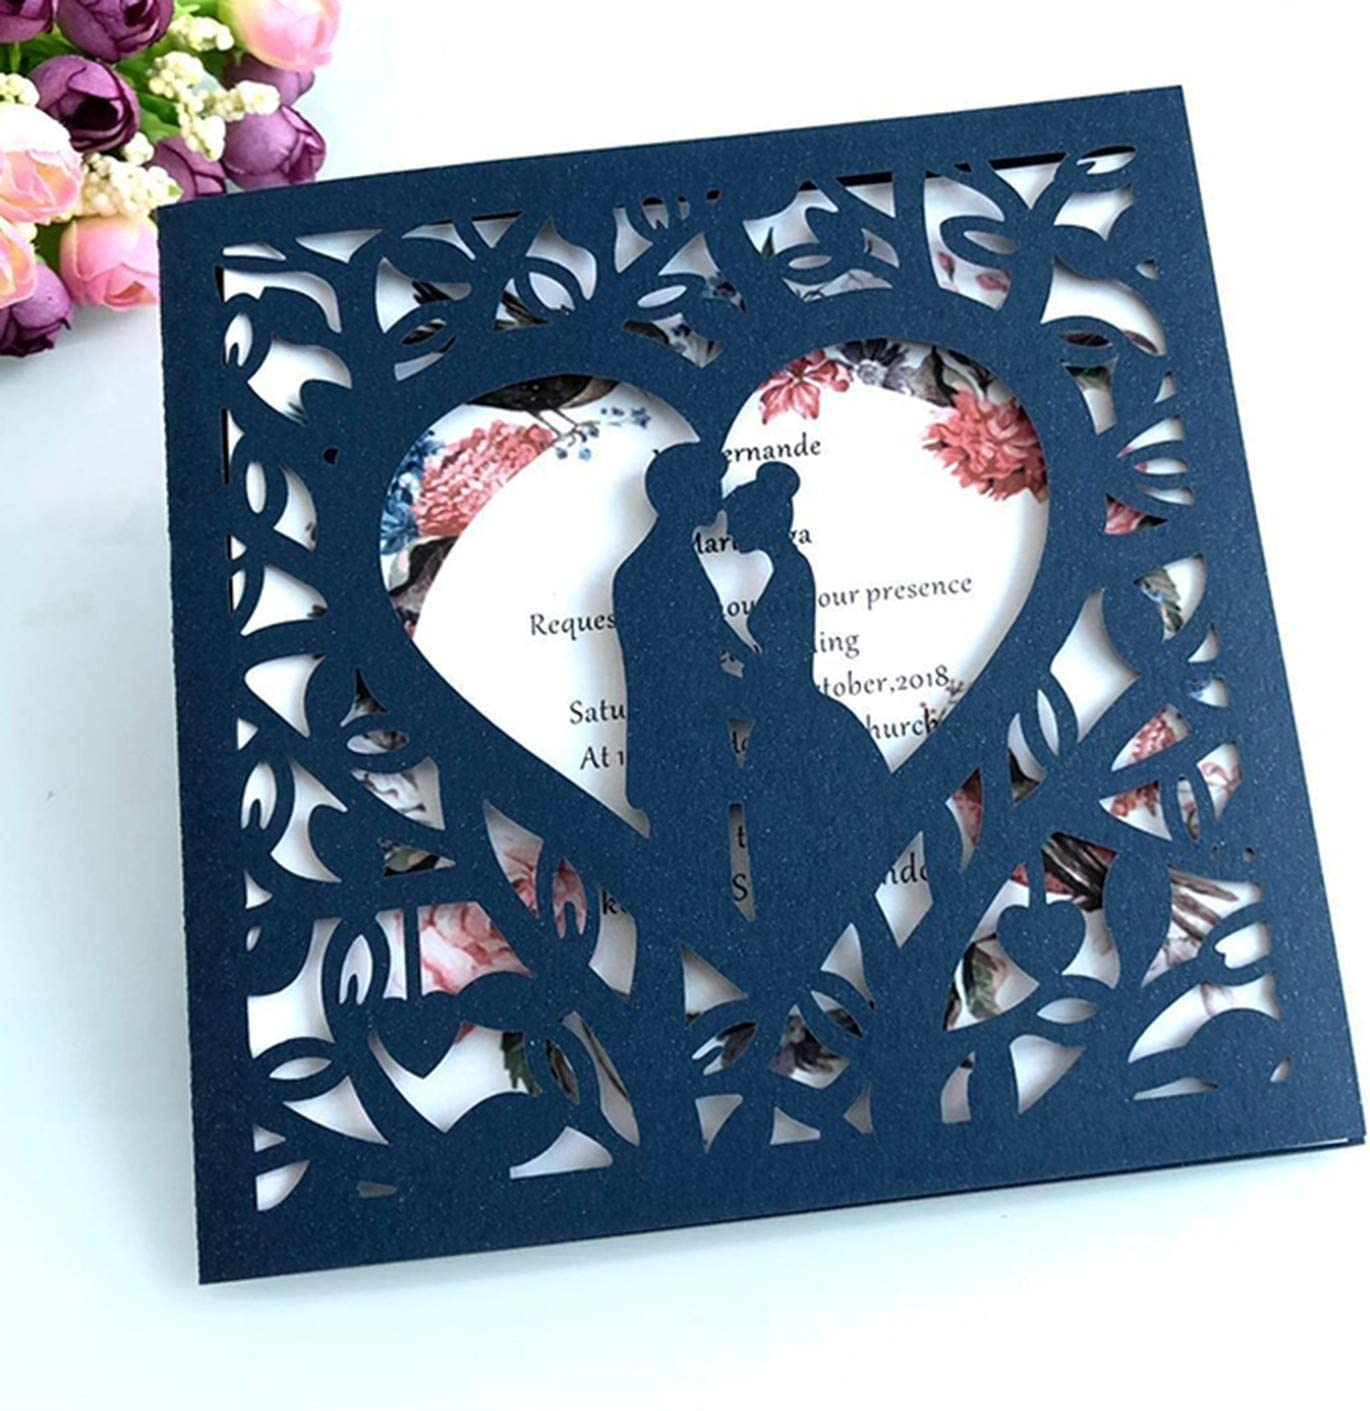 50pcs Blue White Gold Red Hollow Heart Marriage Wedding Invitations Card Greeting Card Print Postcard Party Supplies,One Set Gold